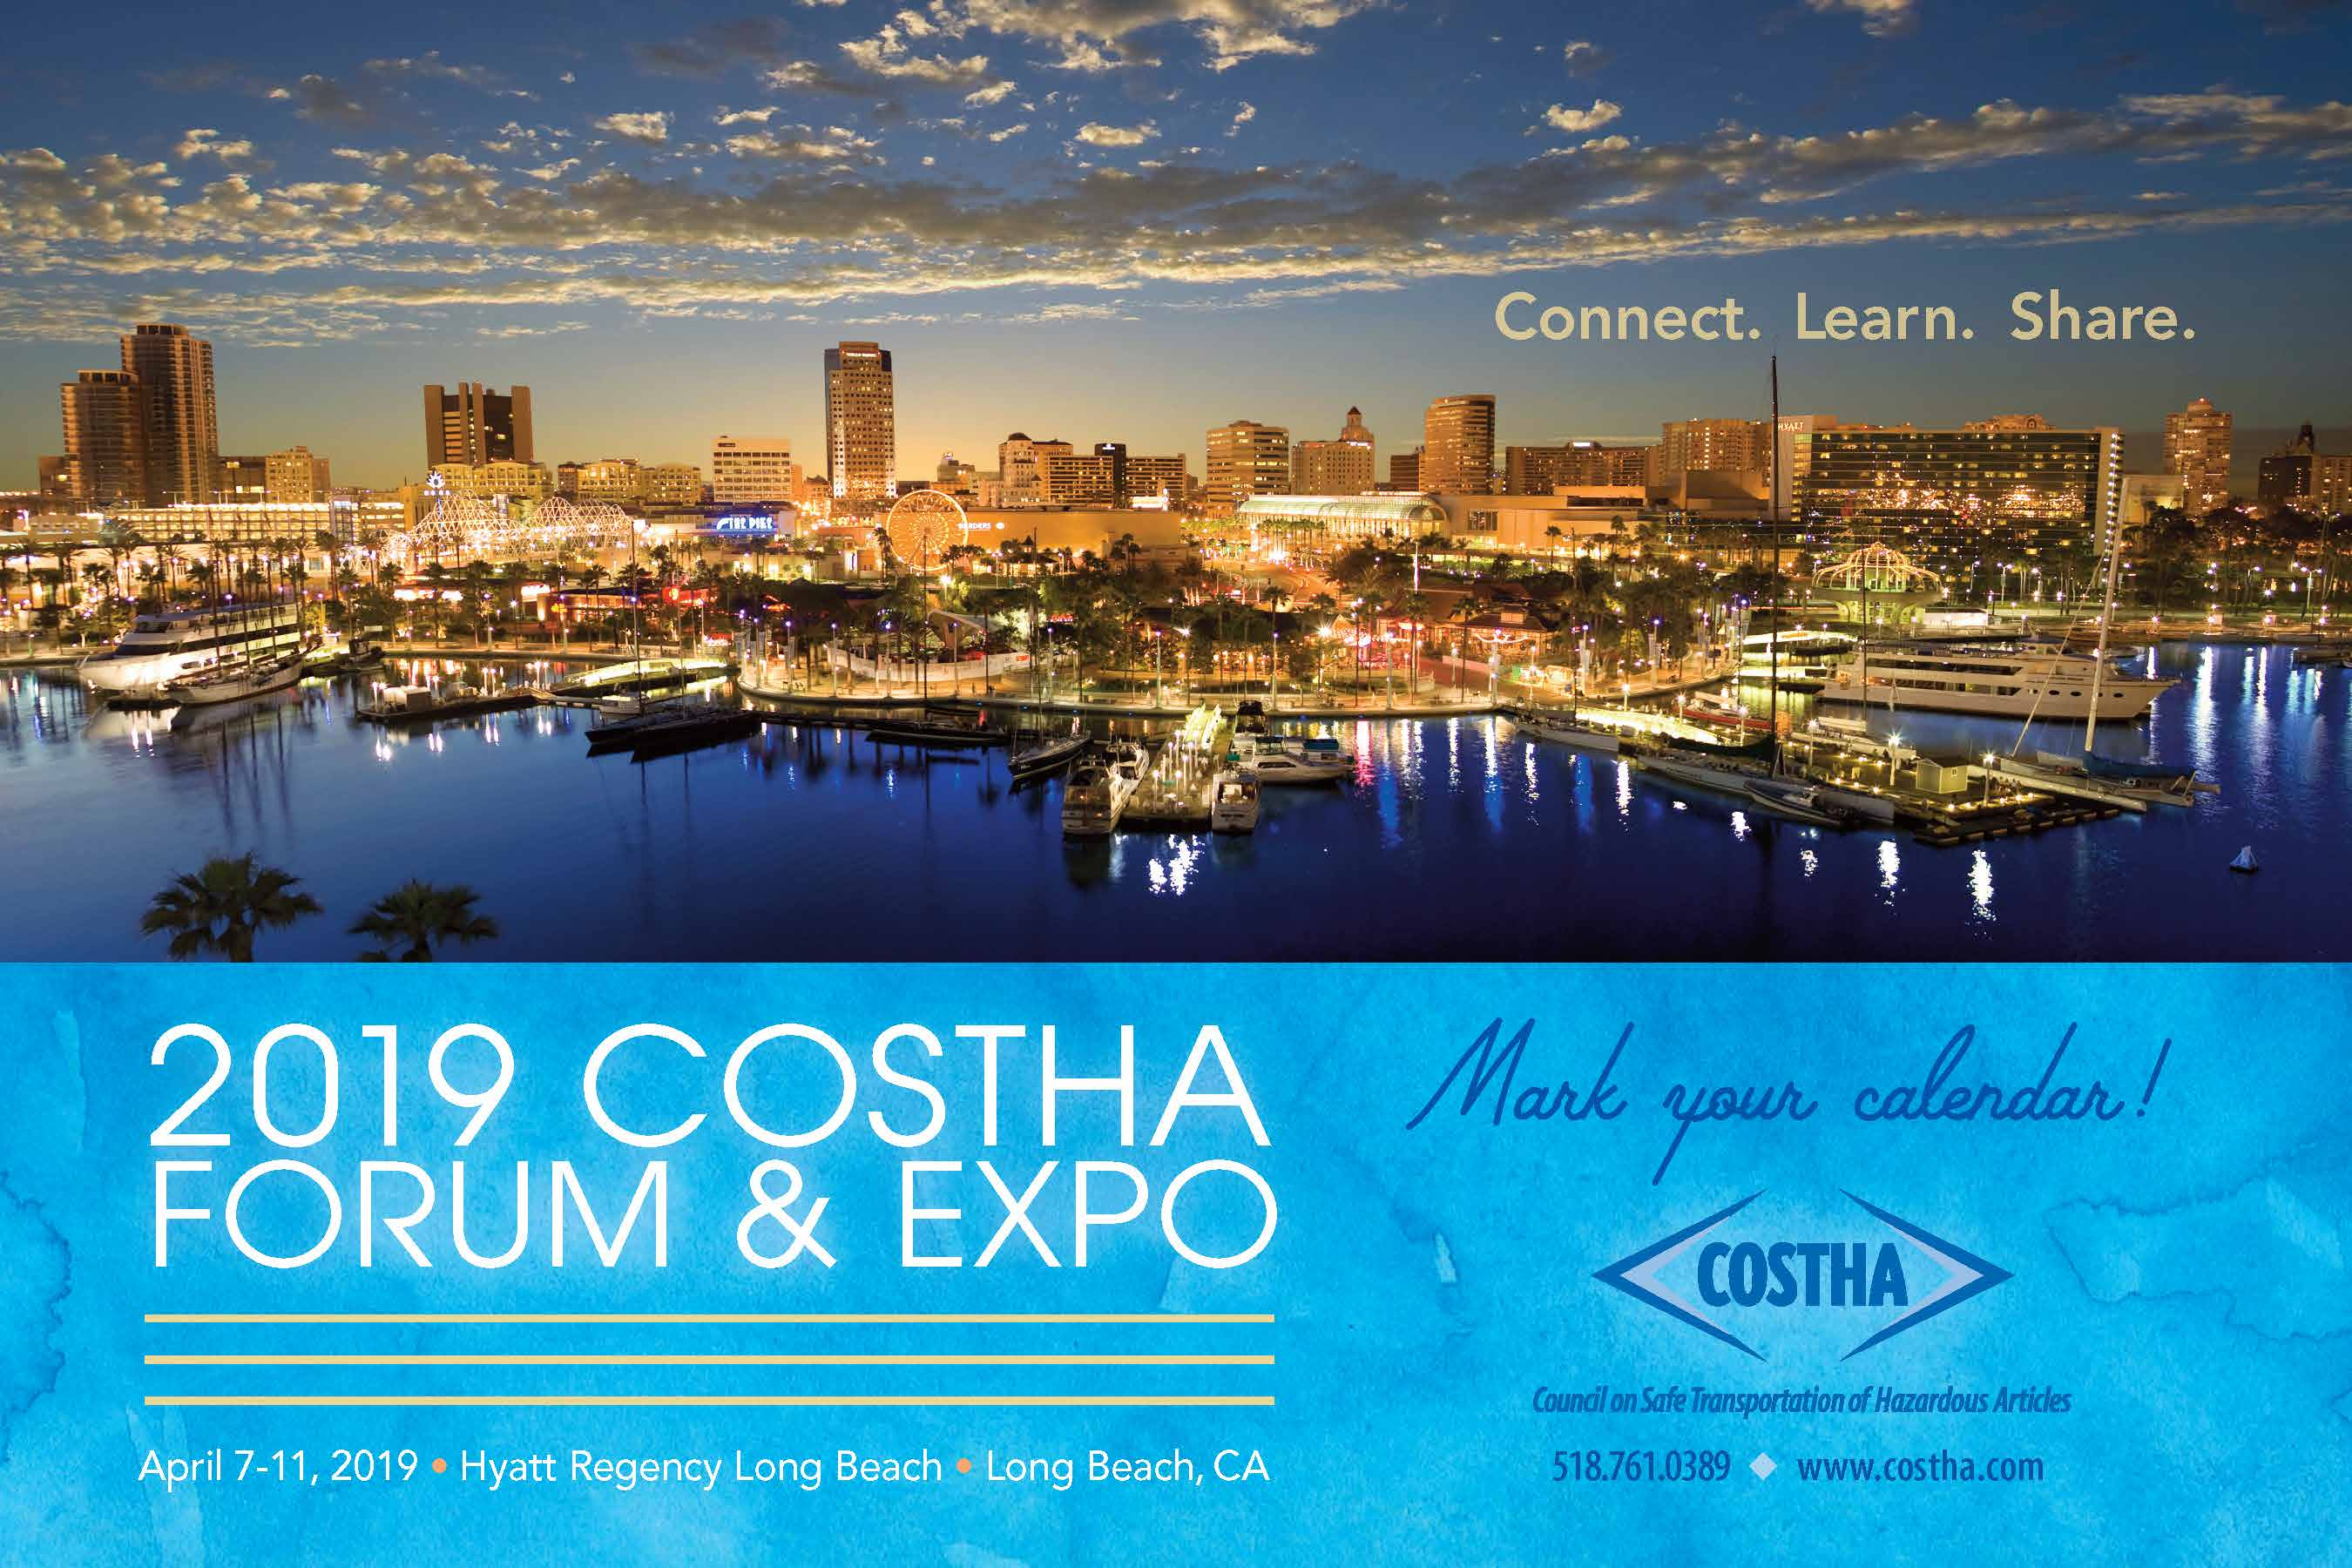 COSTHA 2019 Annual Forum & Expo